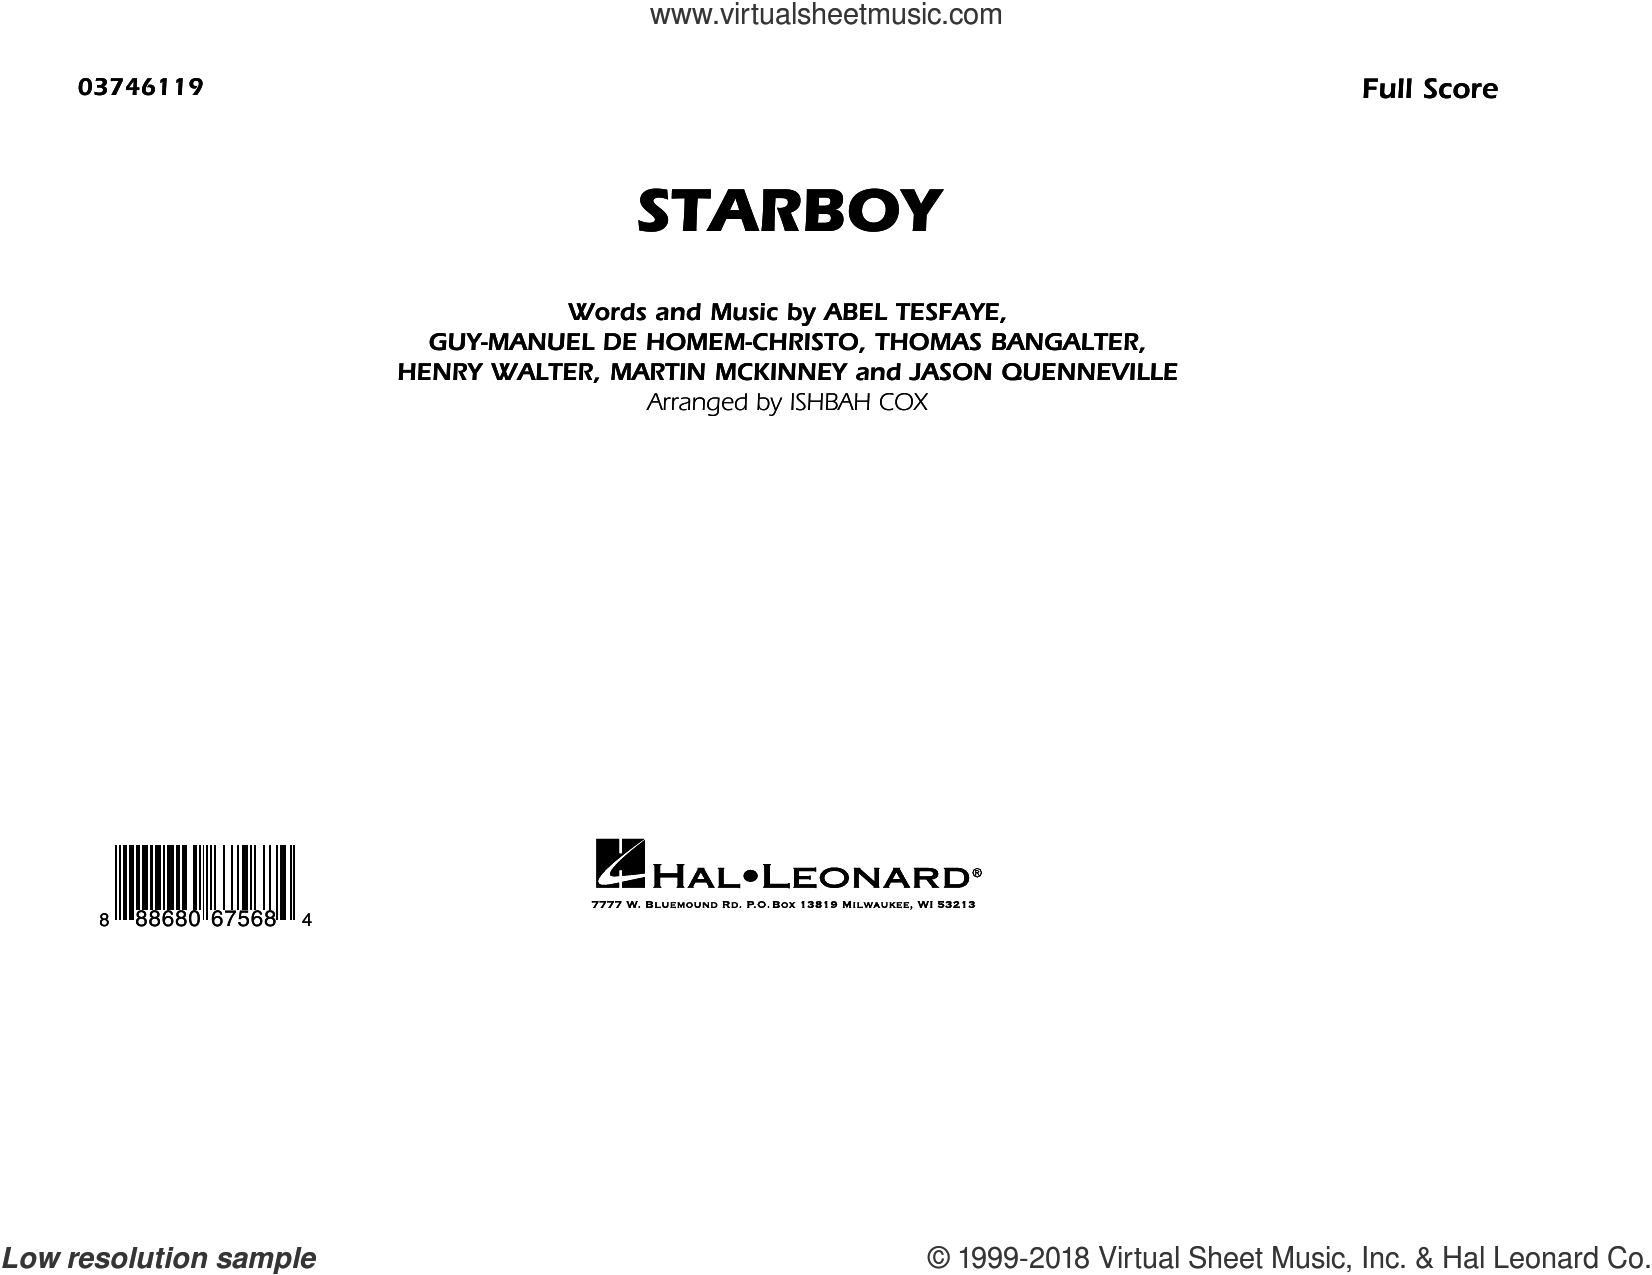 Starboy (COMPLETE) sheet music for marching band by Ishbah Cox, Abel Tesfaye, Guy-Manuel de Homem-Christo, Henry Russell Walter, Jason Quenneville, Martin McKinney, The Weeknd feat. Daft Punk and Thomas Bangalter, intermediate skill level